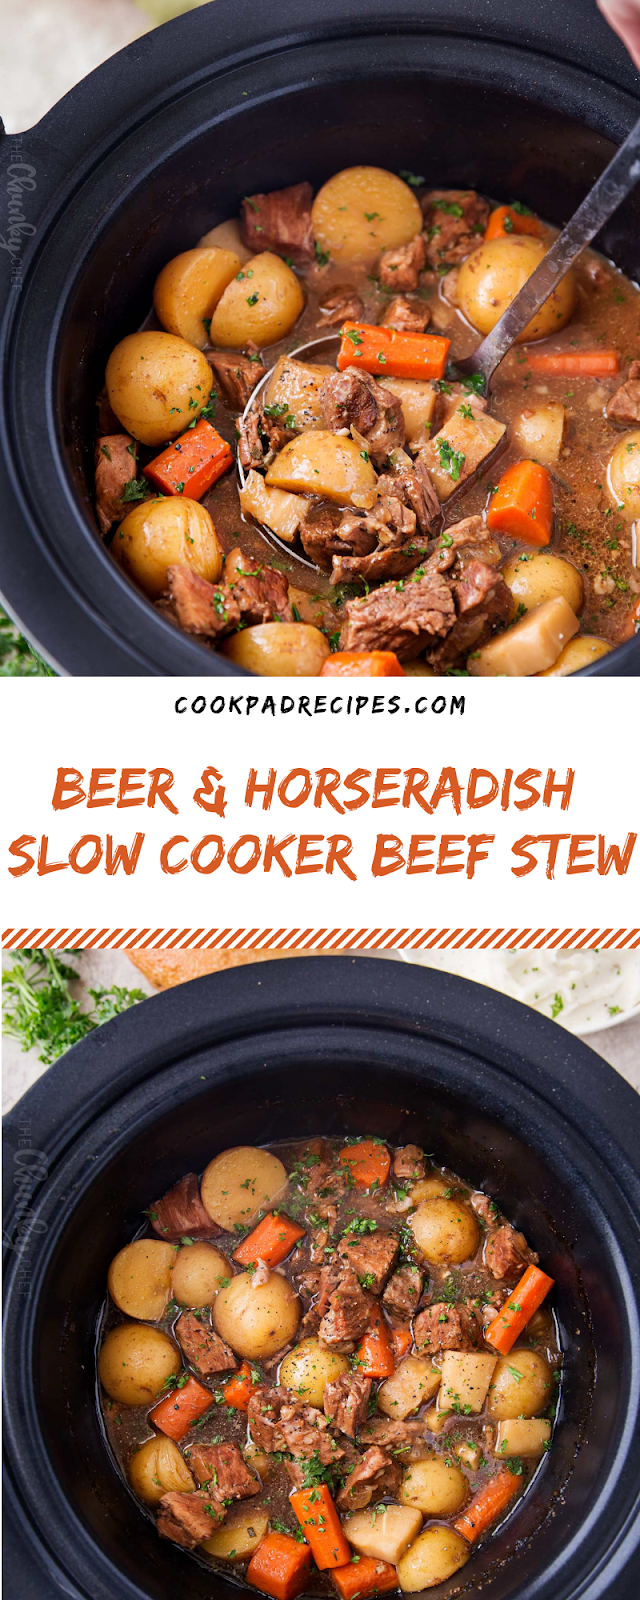 BEER & HORSERADISH SLOW COOKER BEEF STEW